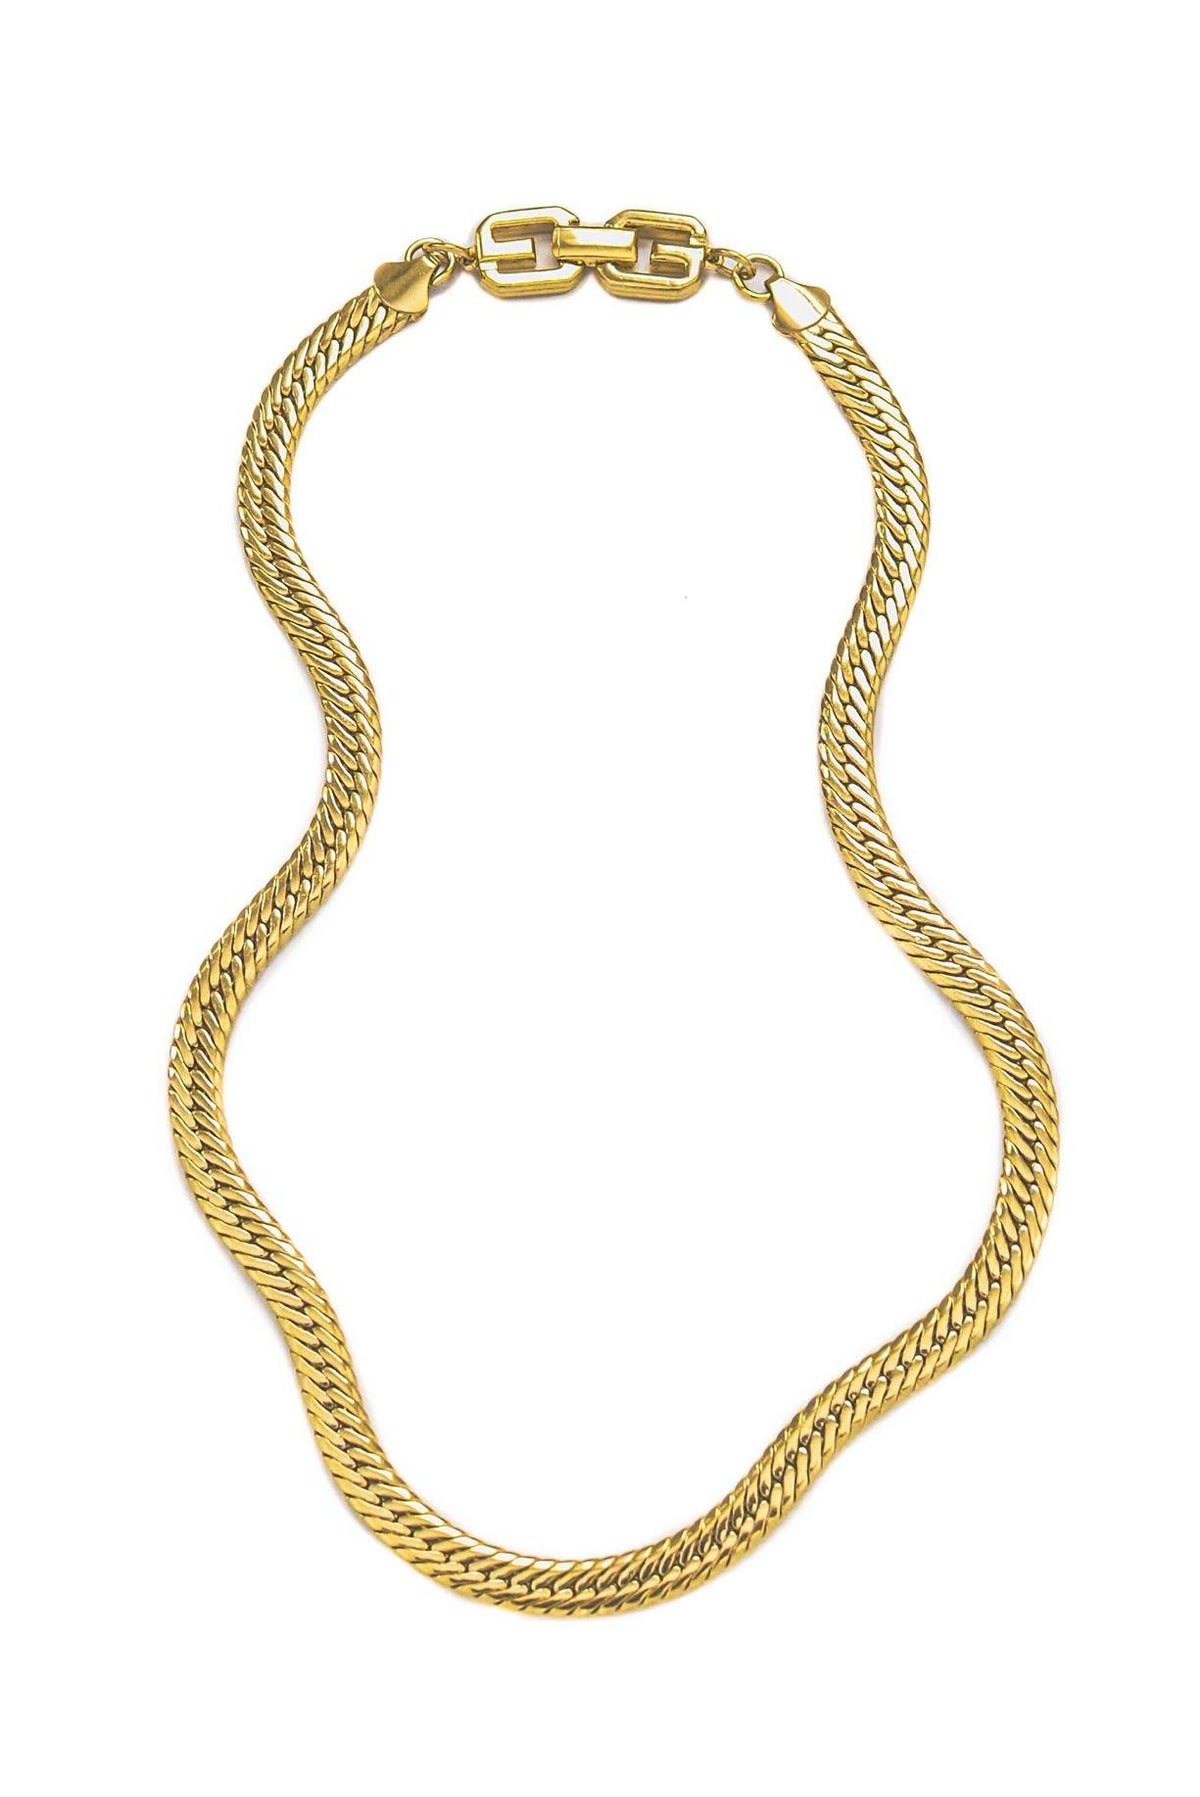 Vintage Givenchy Herringbone Chain Necklace from Sweet and Spark